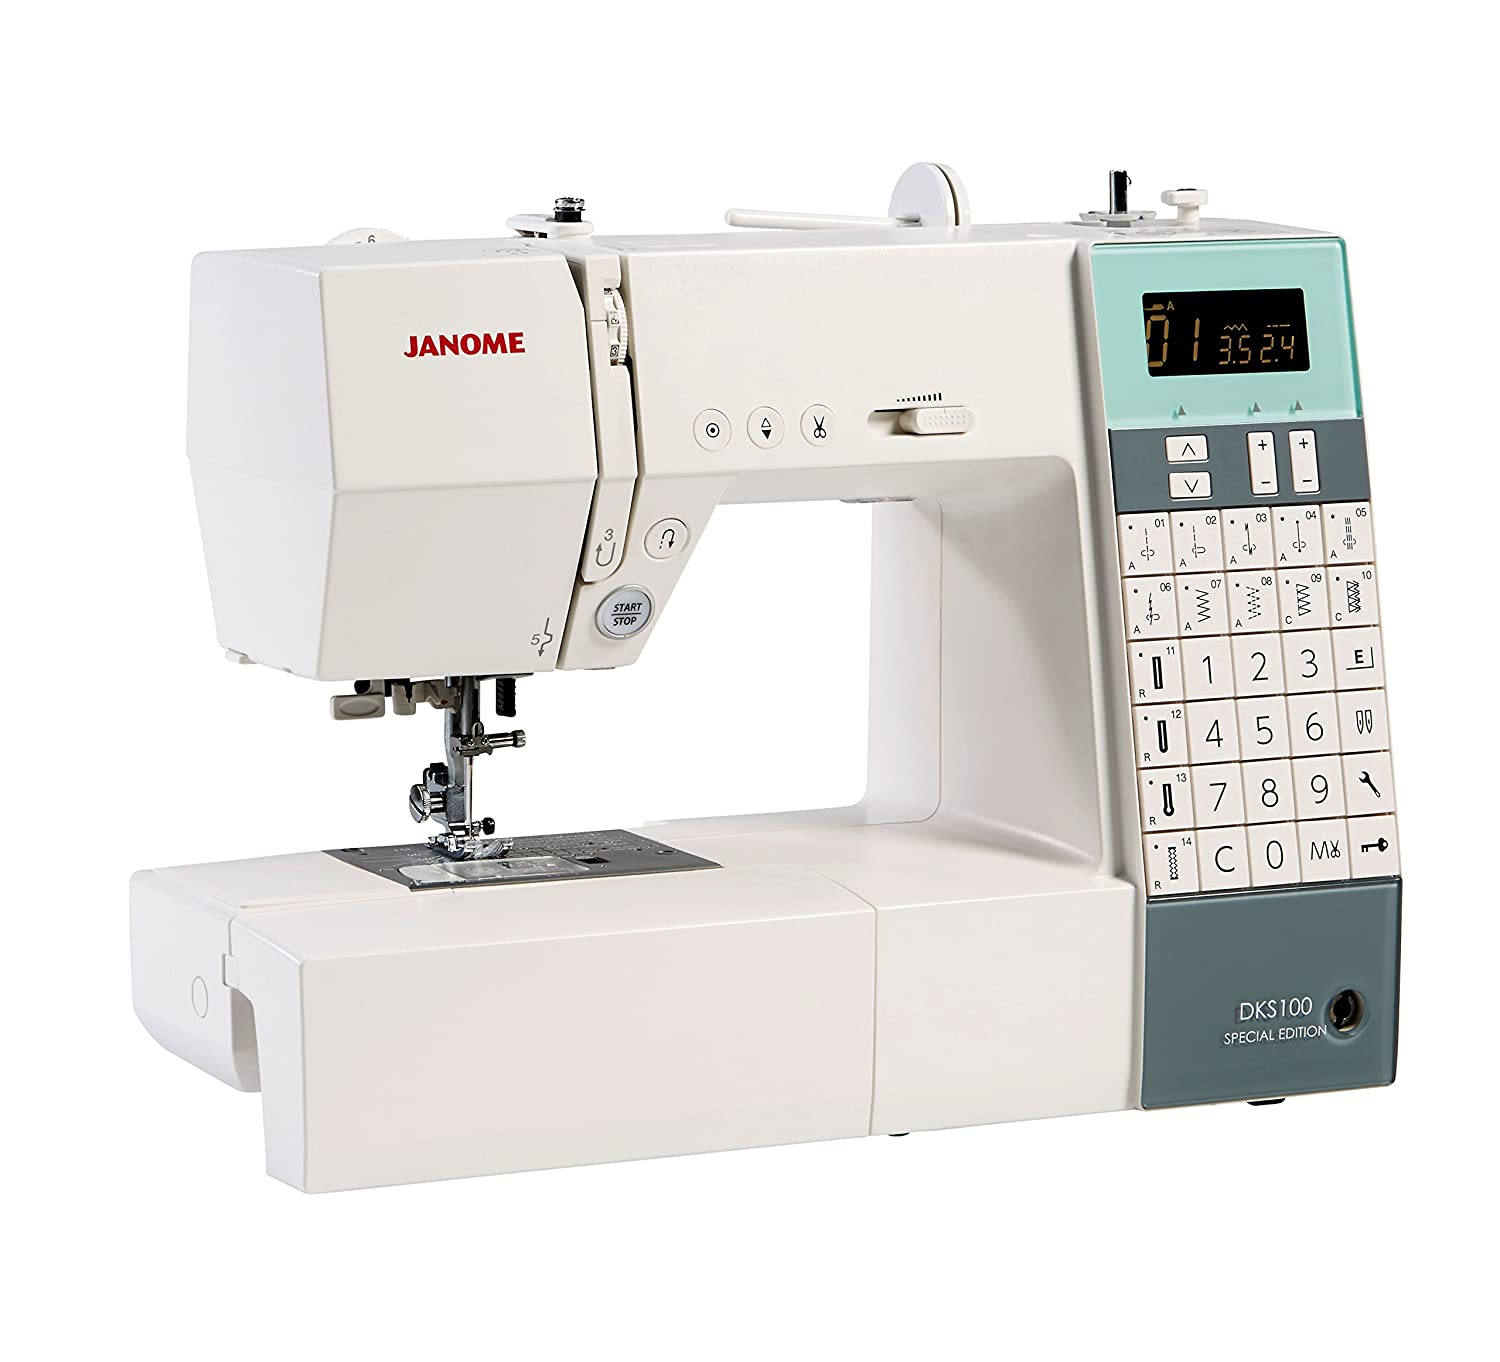 quilting quilt embroidery en picture craft of machine memory sewing janome machinebrother